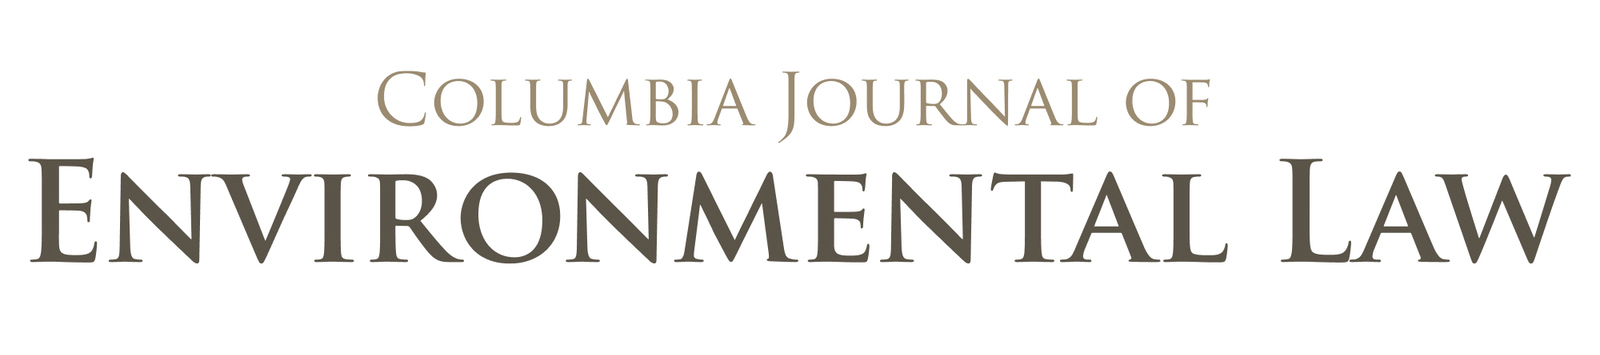 link to Columbia Journal of Environmental Law site